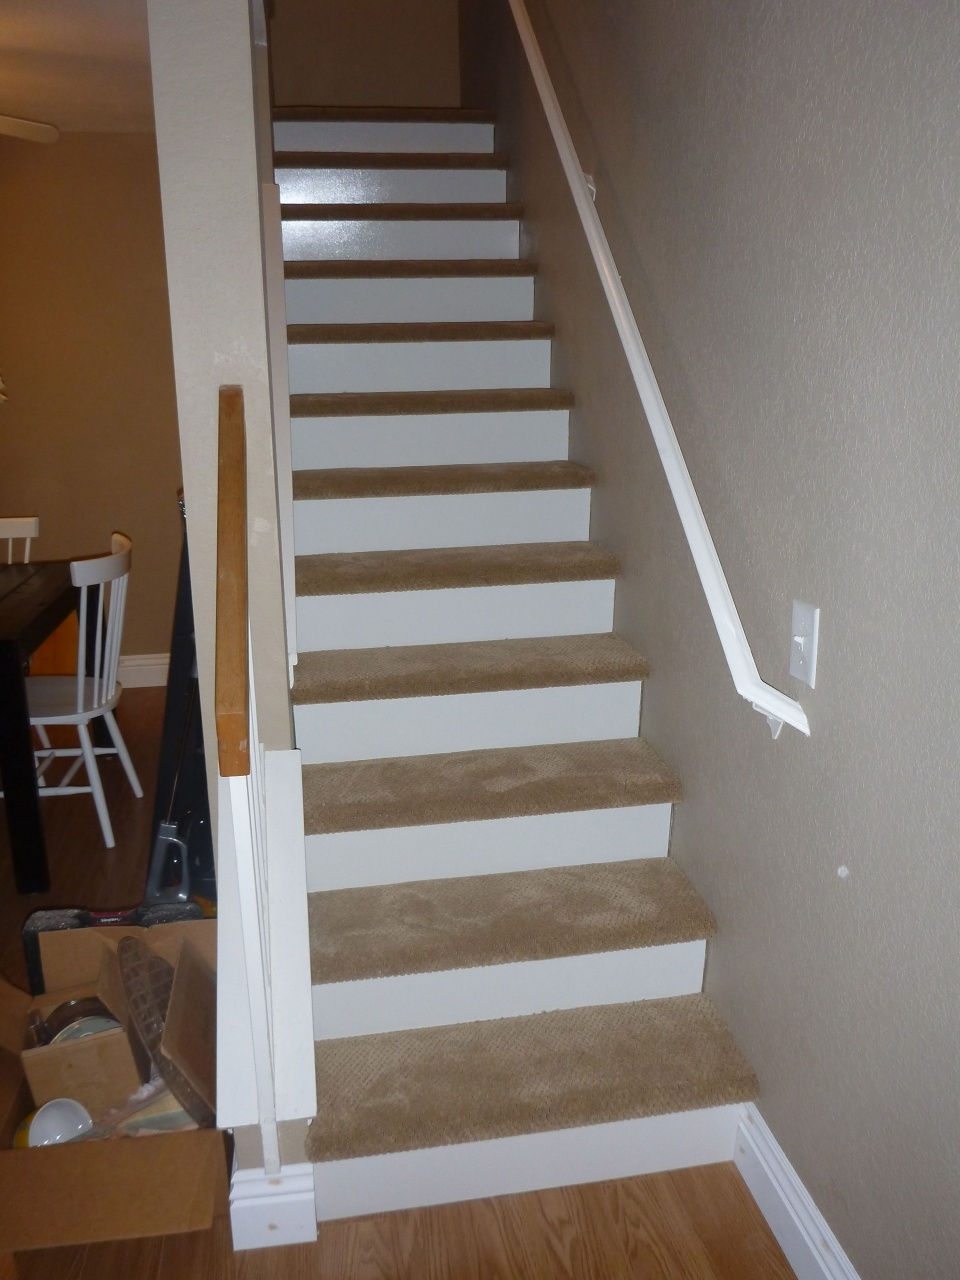 Vinyl Stairs Treads And Risers Our New Stairs 1 8 Inch Wood White   White Oak Stair Risers   Stair Nosing   Handrail   Staircase Makeover   Stair Railing   Paint